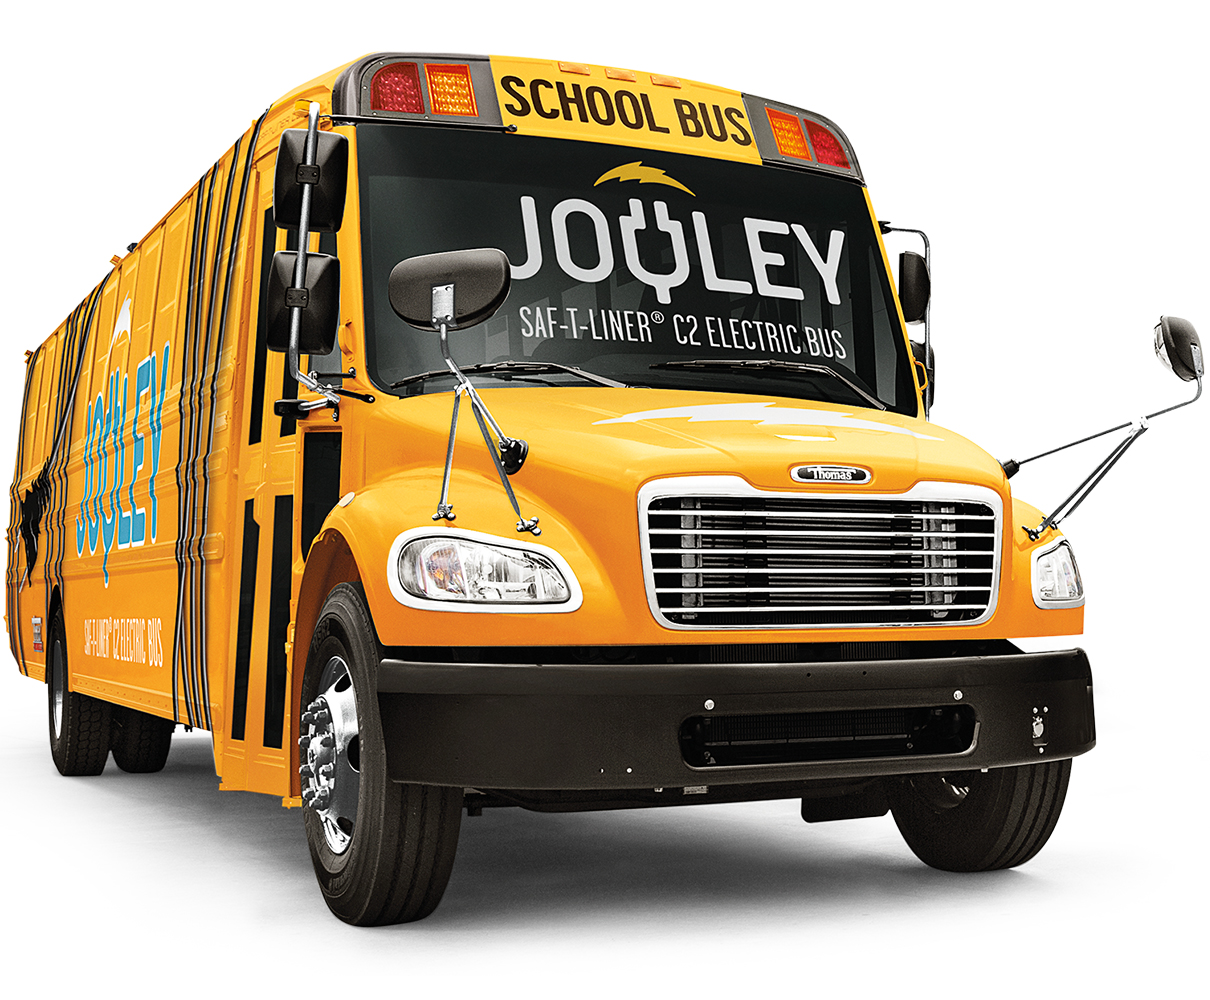 Jouley School Bus